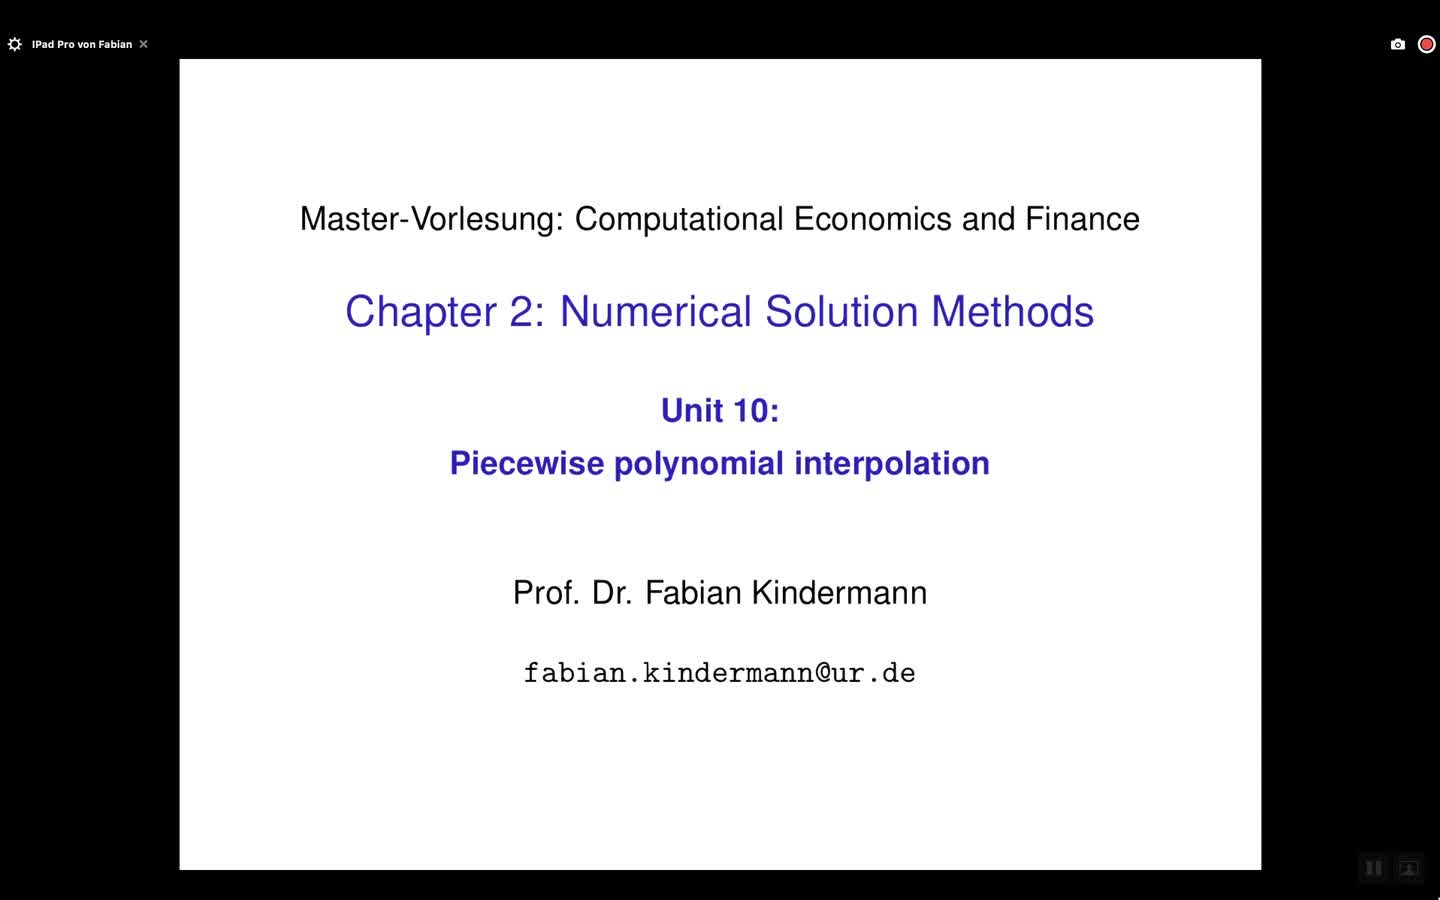 Chapter 2 - Unit 10 - Piecewise polynomial interpolation